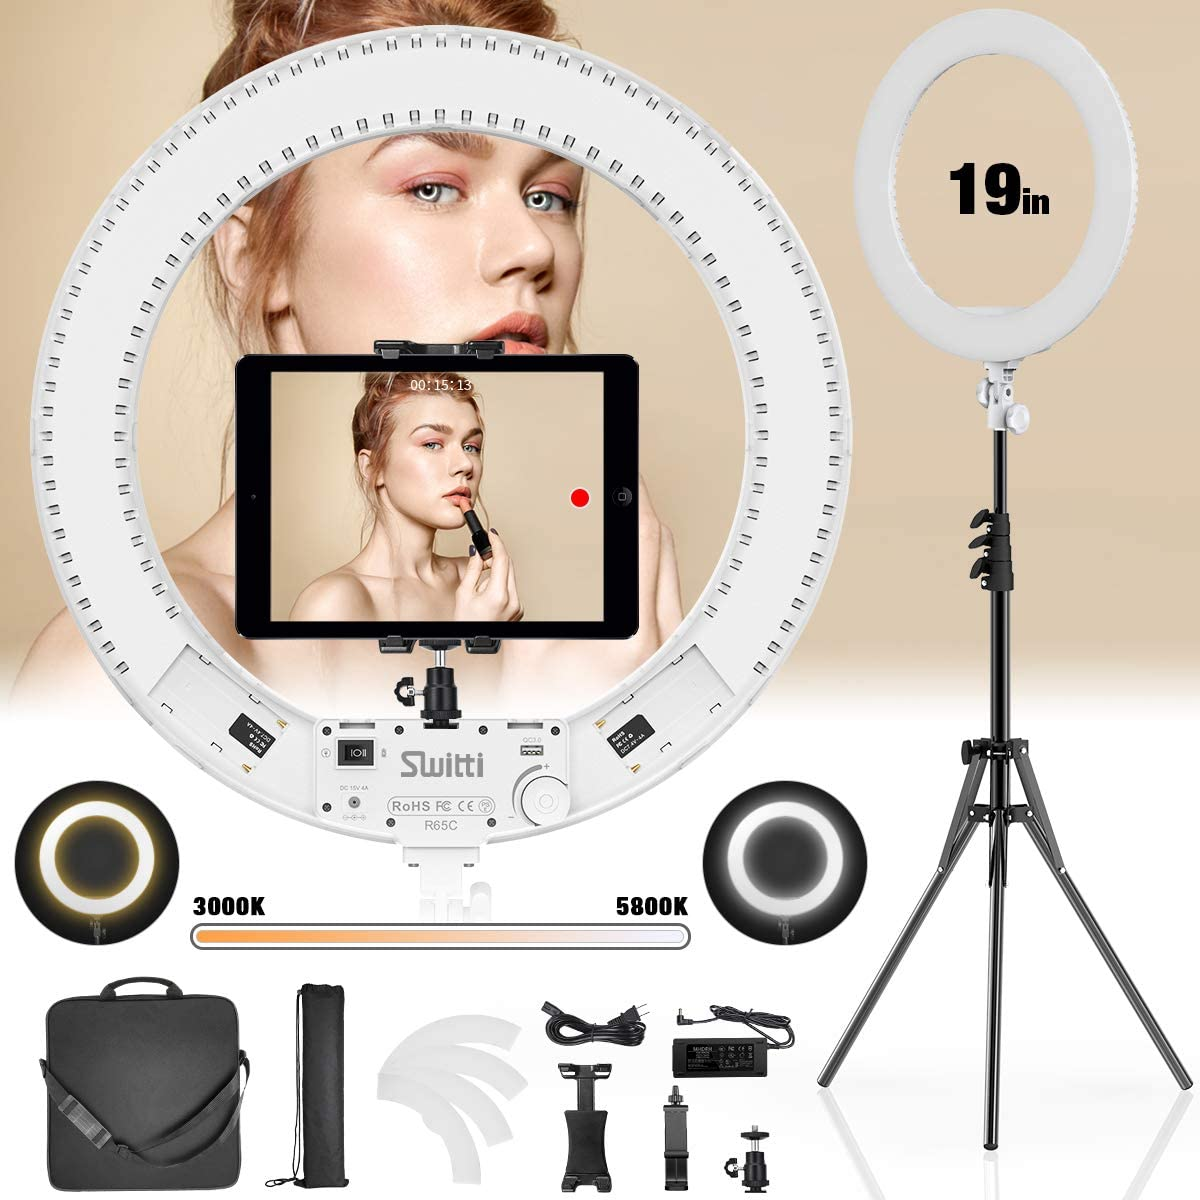 Switti Ring Light with Stand and ipad & Phone Holder,Makeup LED Ring Lights 60W Bi-Color 3000K-5800K CRI≥97 & TLCI ≥99 for YouTube, Facebook Live,Twitch and Blogging (White)